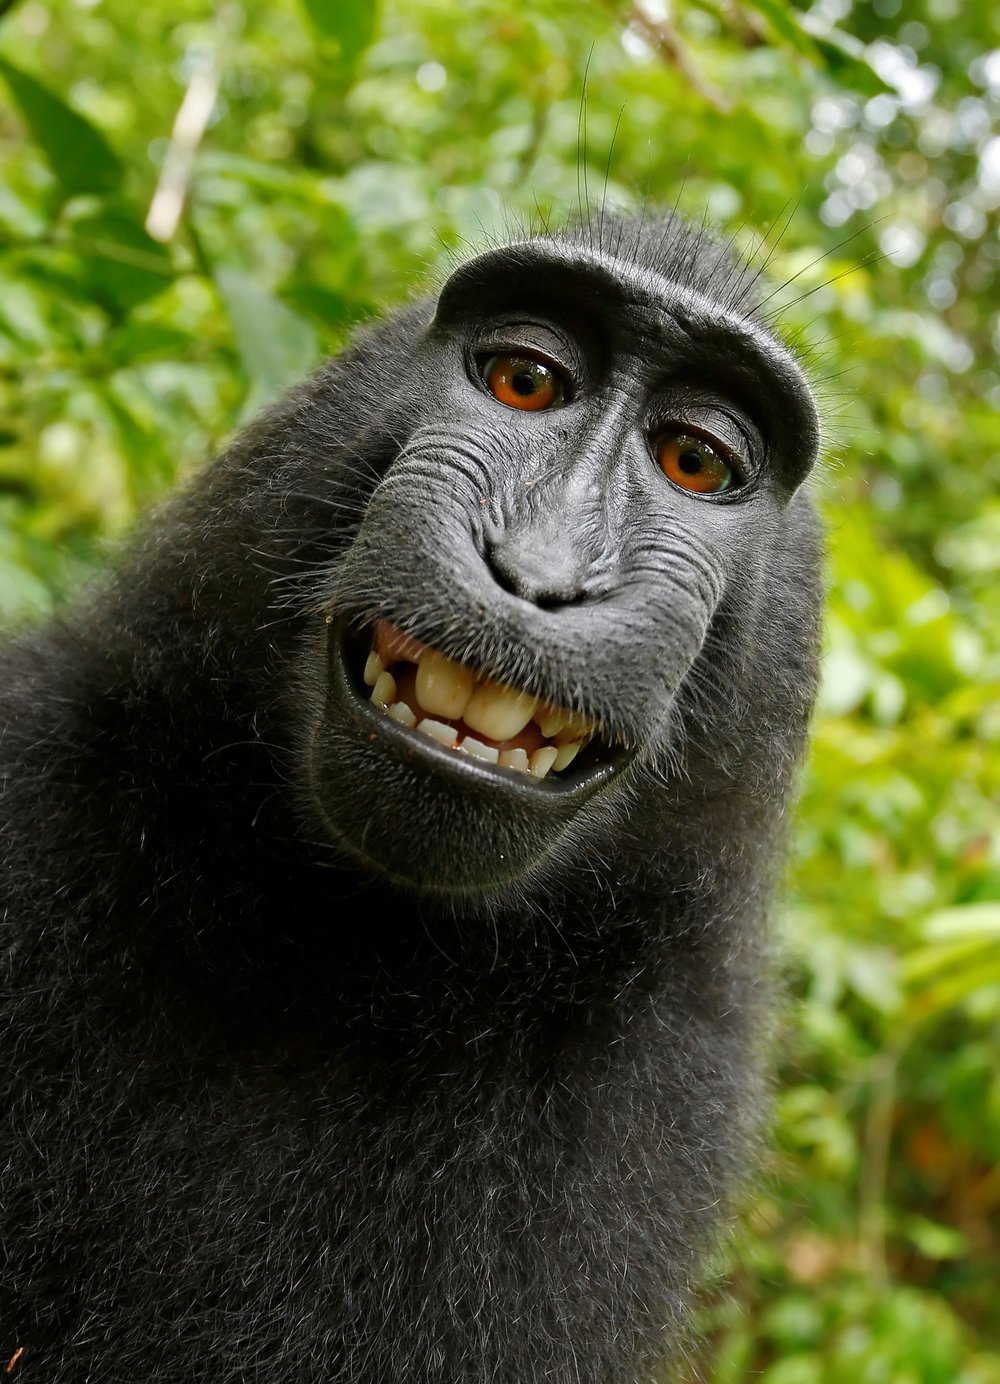 Self-portrait of female macaque in North Sulawesi, Indonesia who took the camera of photographer David Slater and photographed herself. 2011